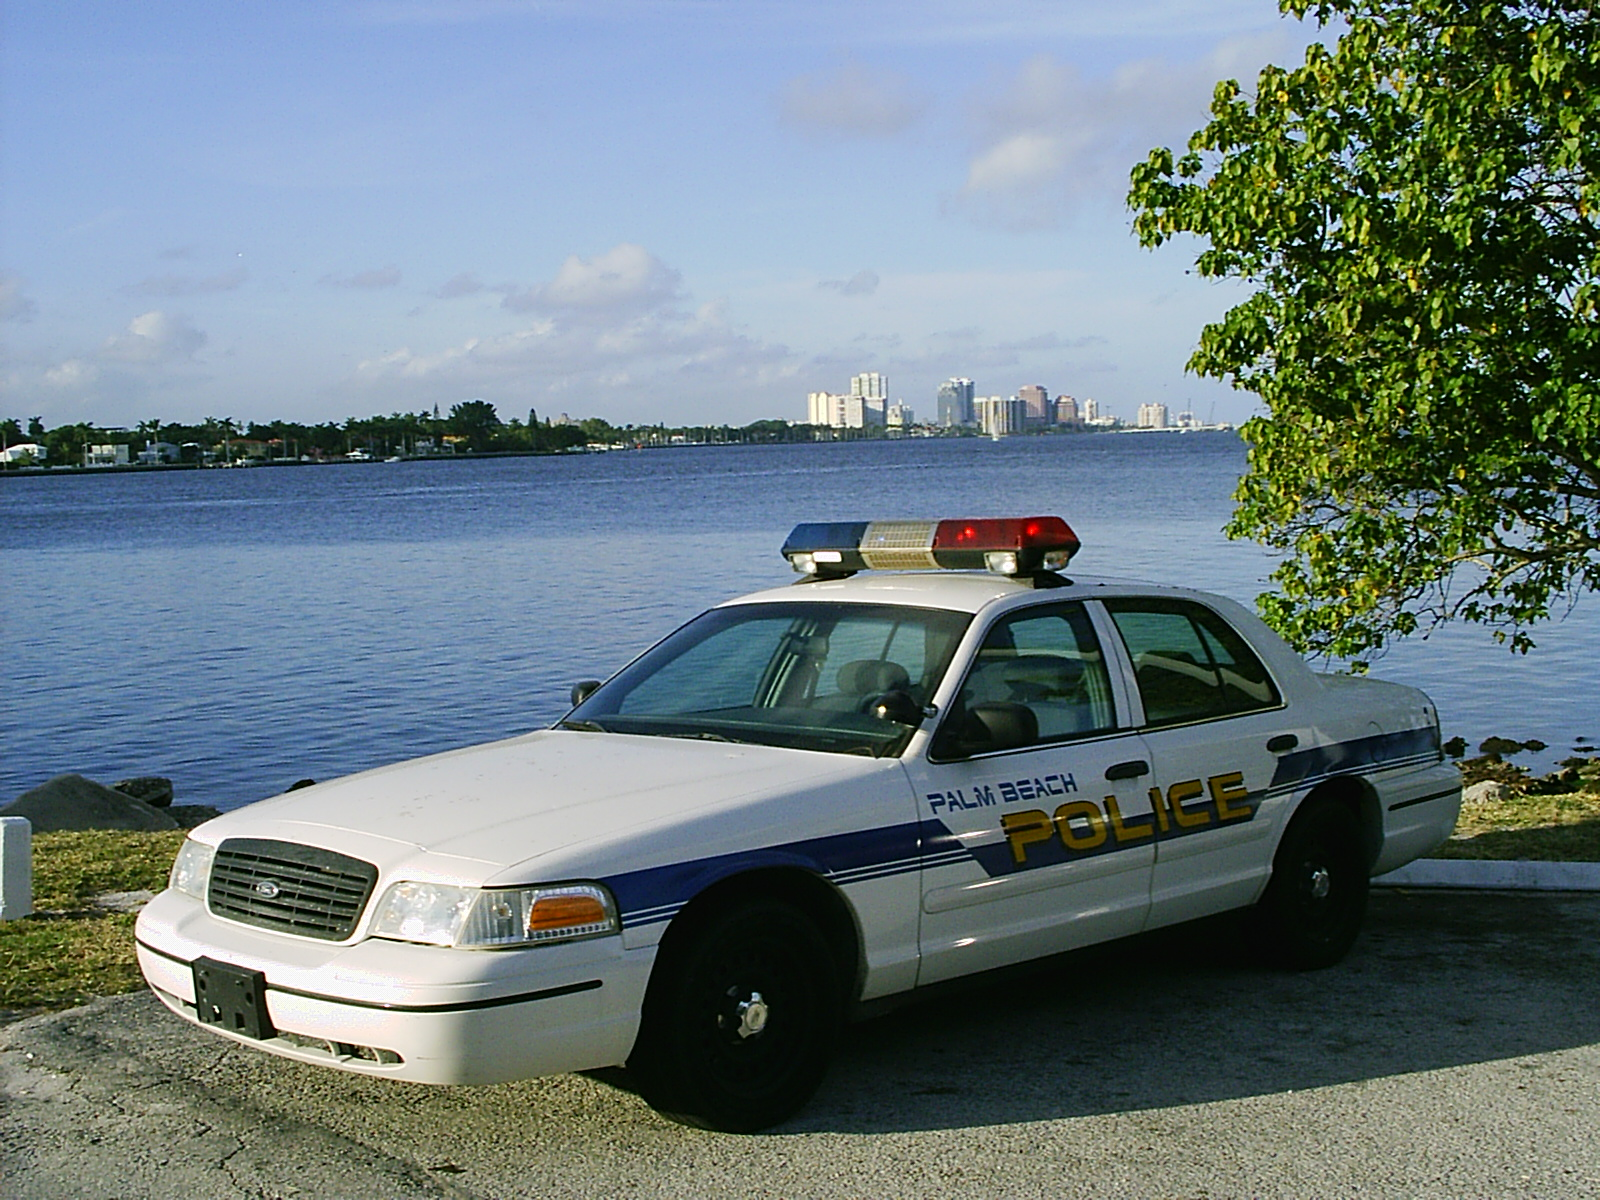 Used Cars West Palm Beach >> File:Police car Palm Beach FL at Lake Worth.jpg - Wikimedia Commons